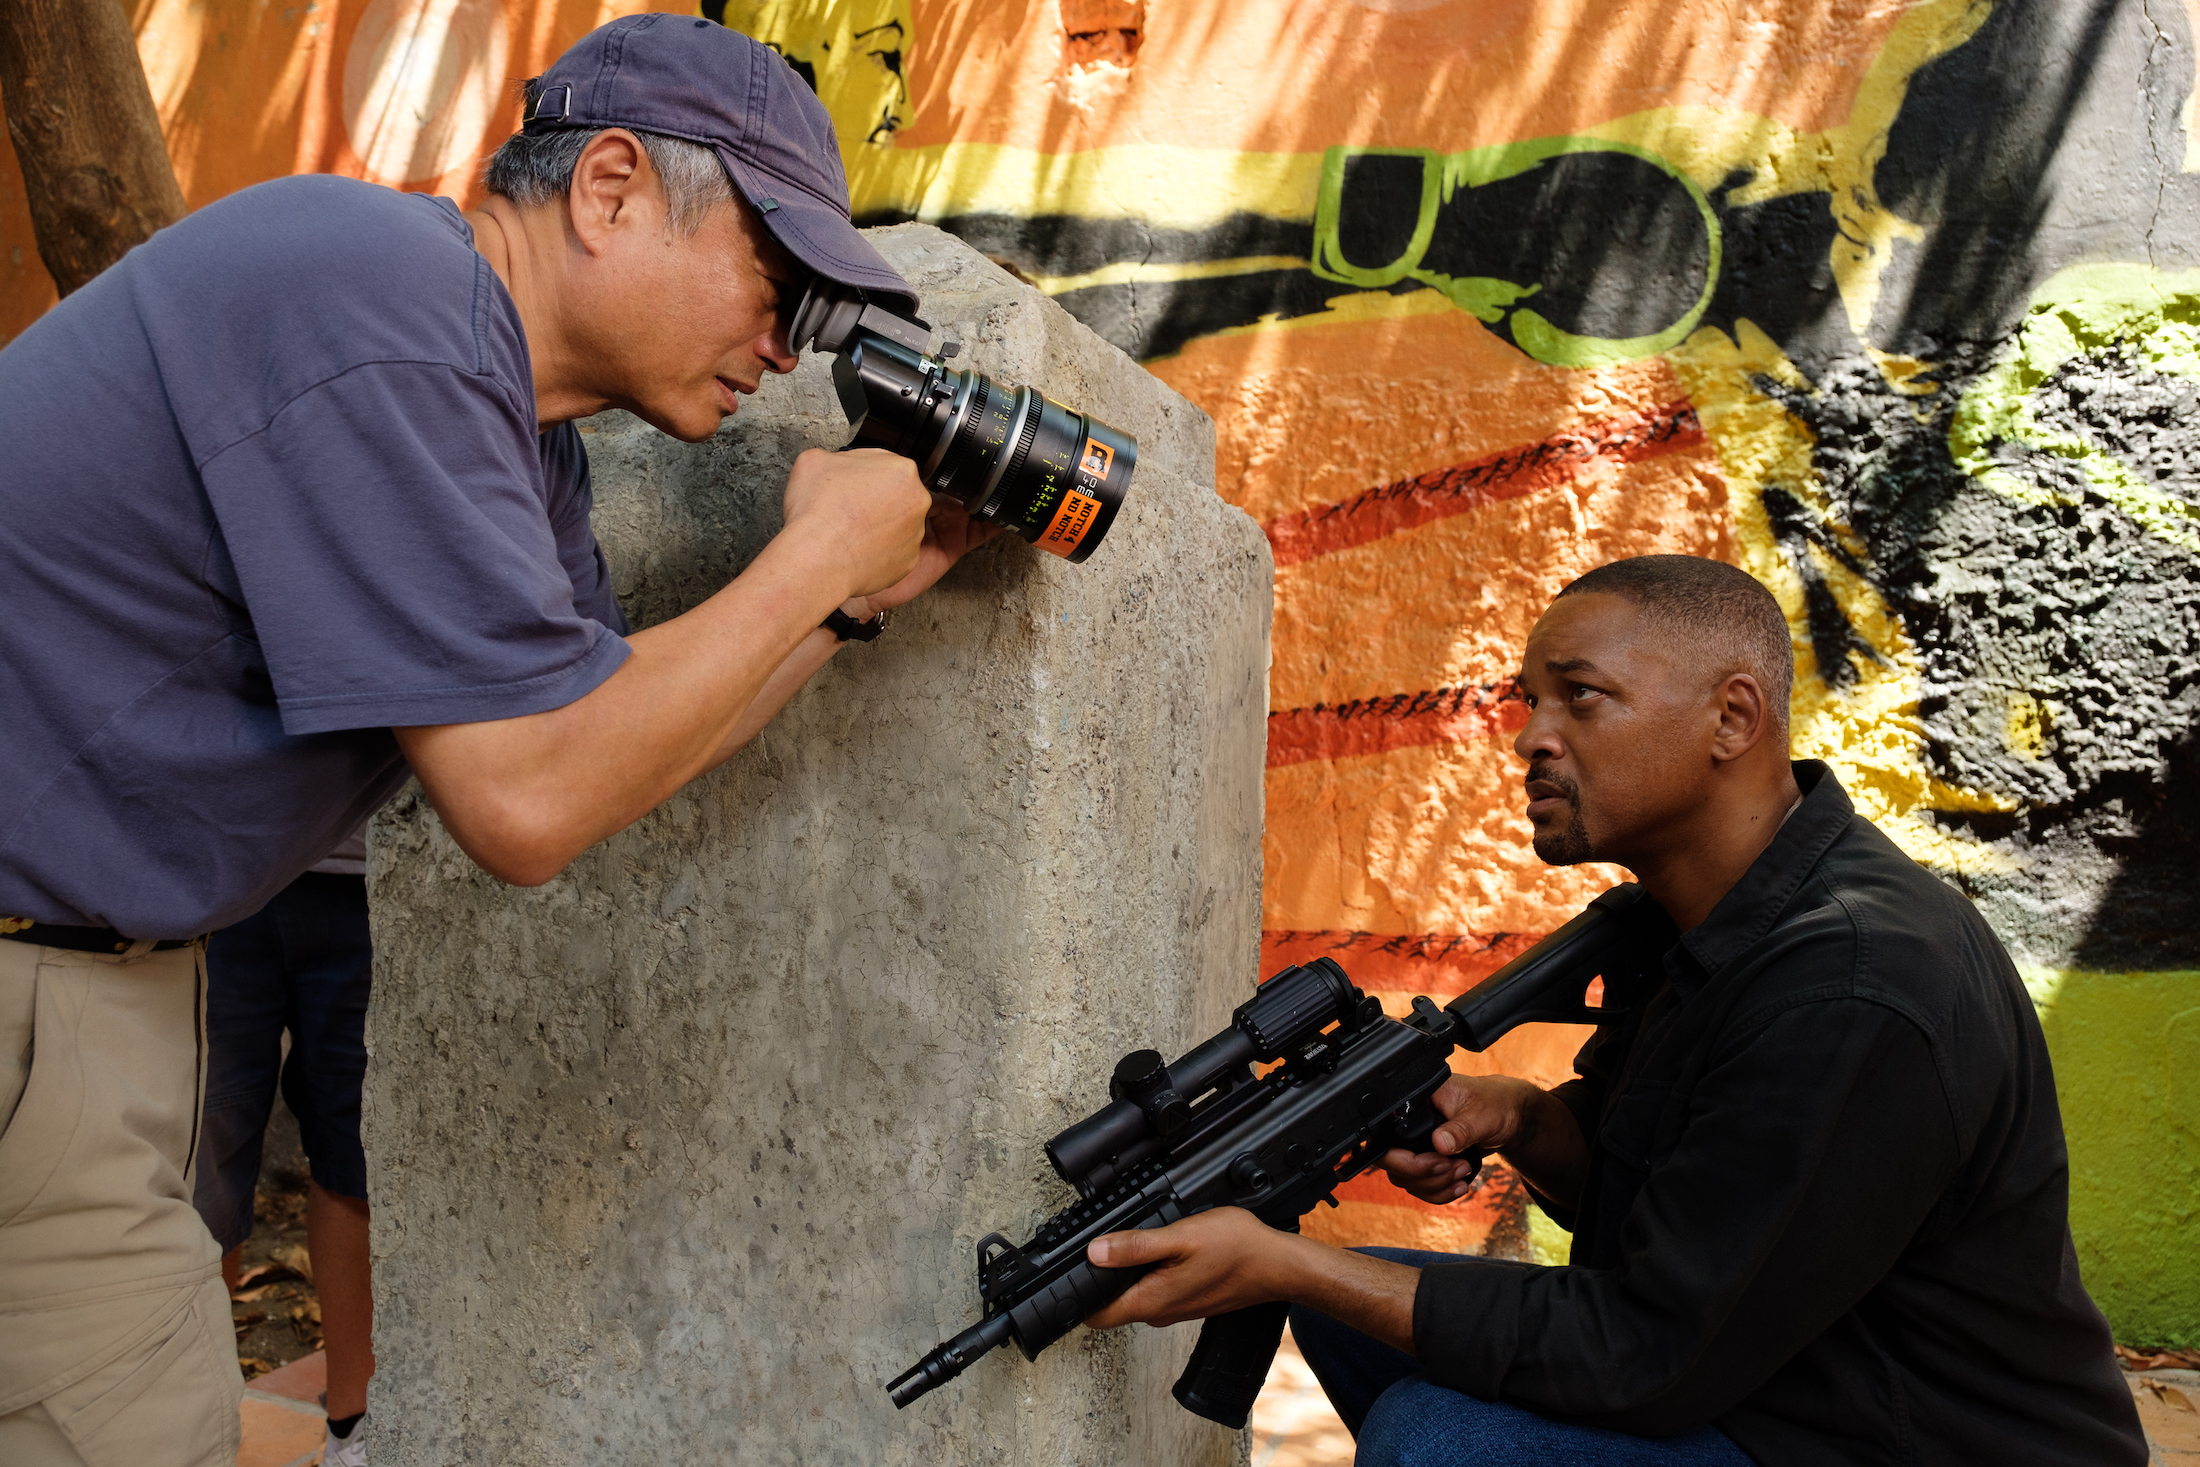 Ang Lee lines up his shot with a viewfinder as Will Smith crouches on the ground with a semi-automatic rifle